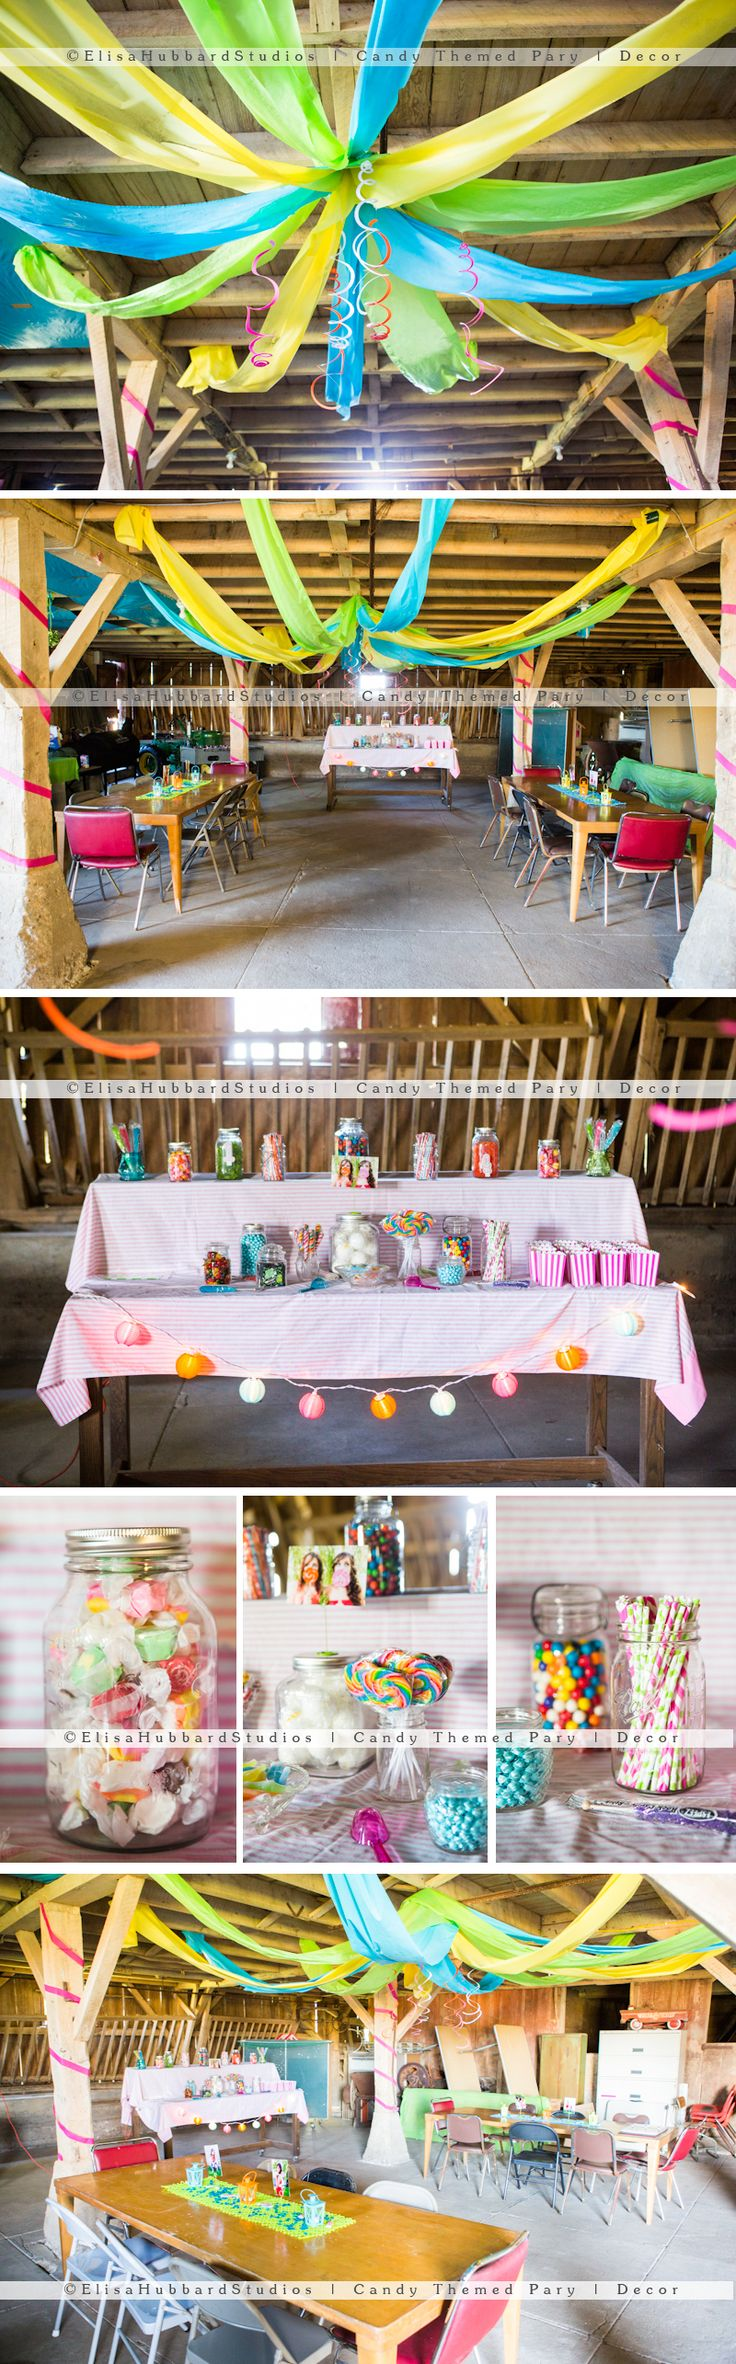 Best 25 candy themed bedroom ideas on pinterest chair for Candy themed bedroom ideas